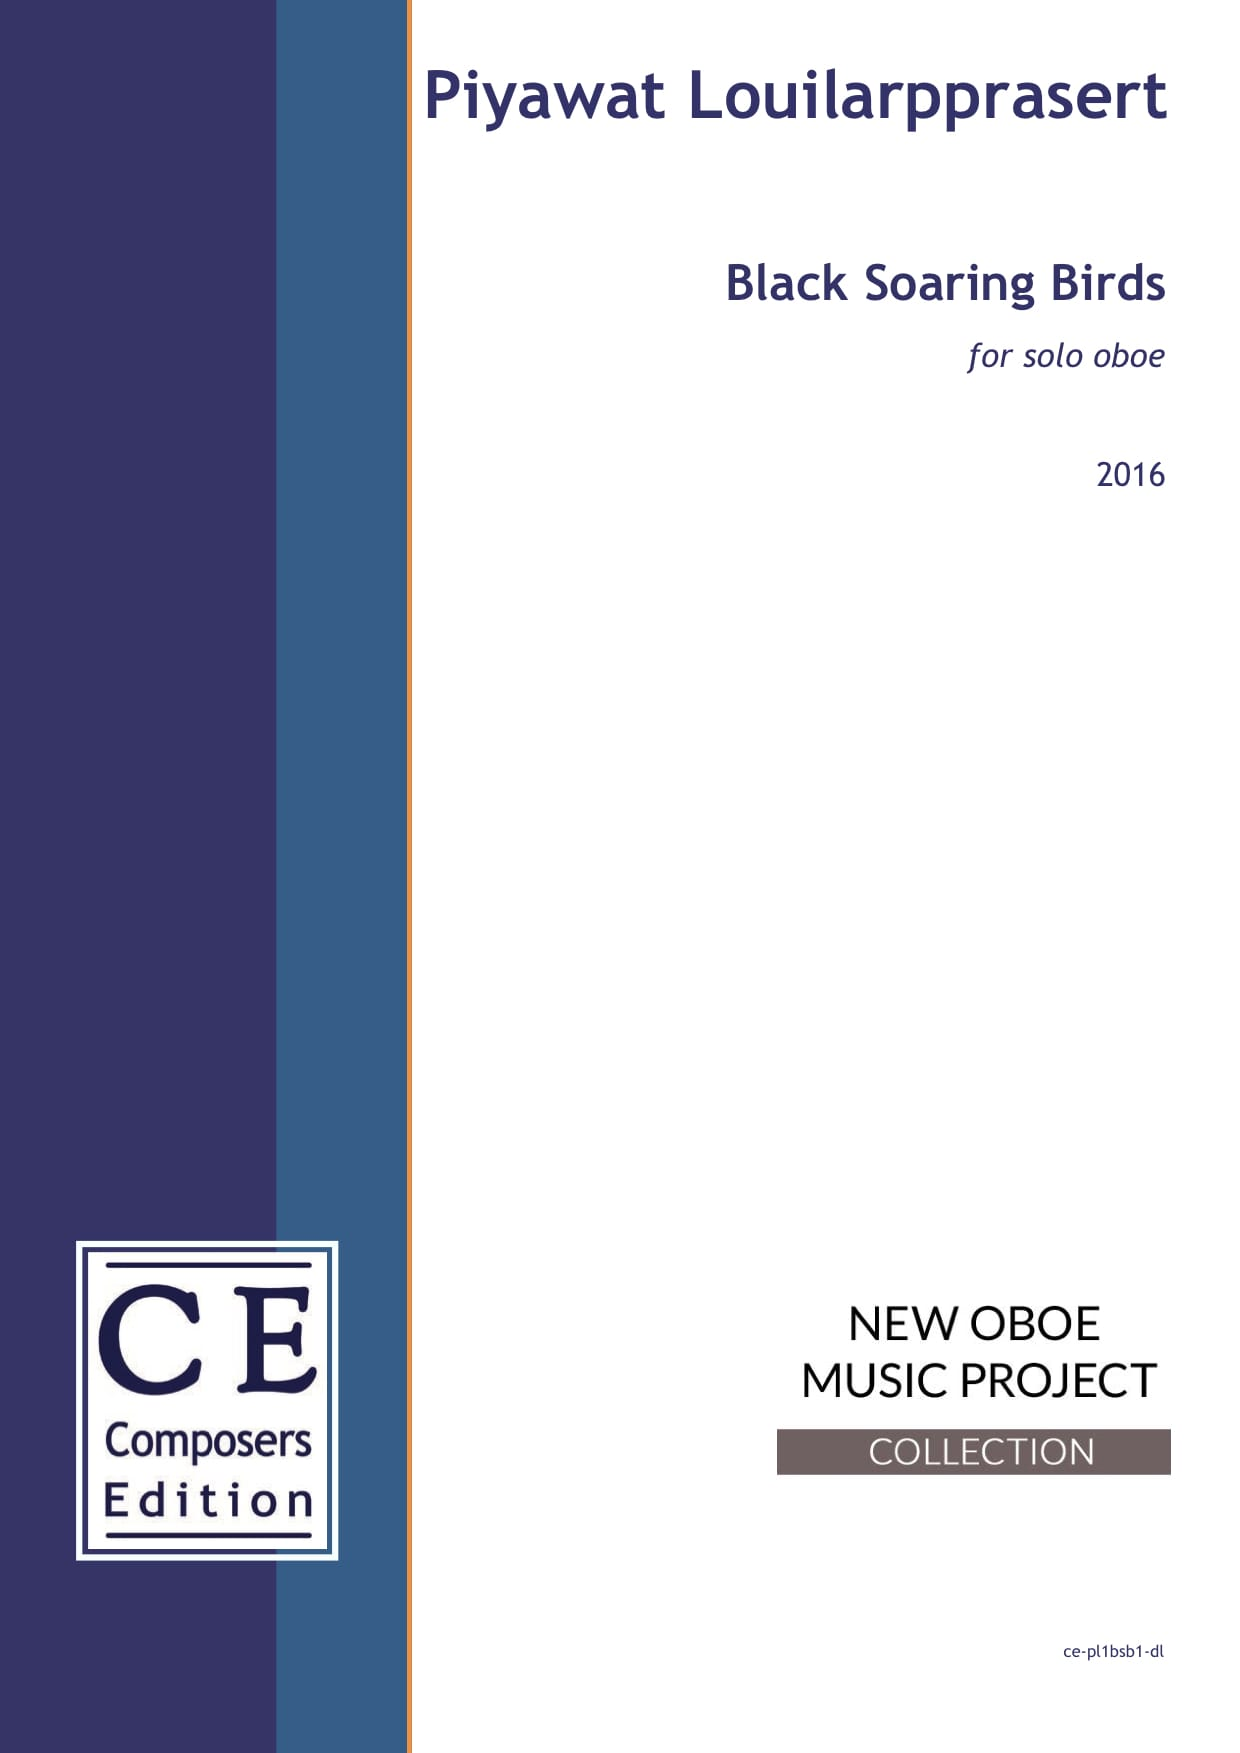 Piyawat Louilarpprasert: Black Soaring Birds for solo oboe